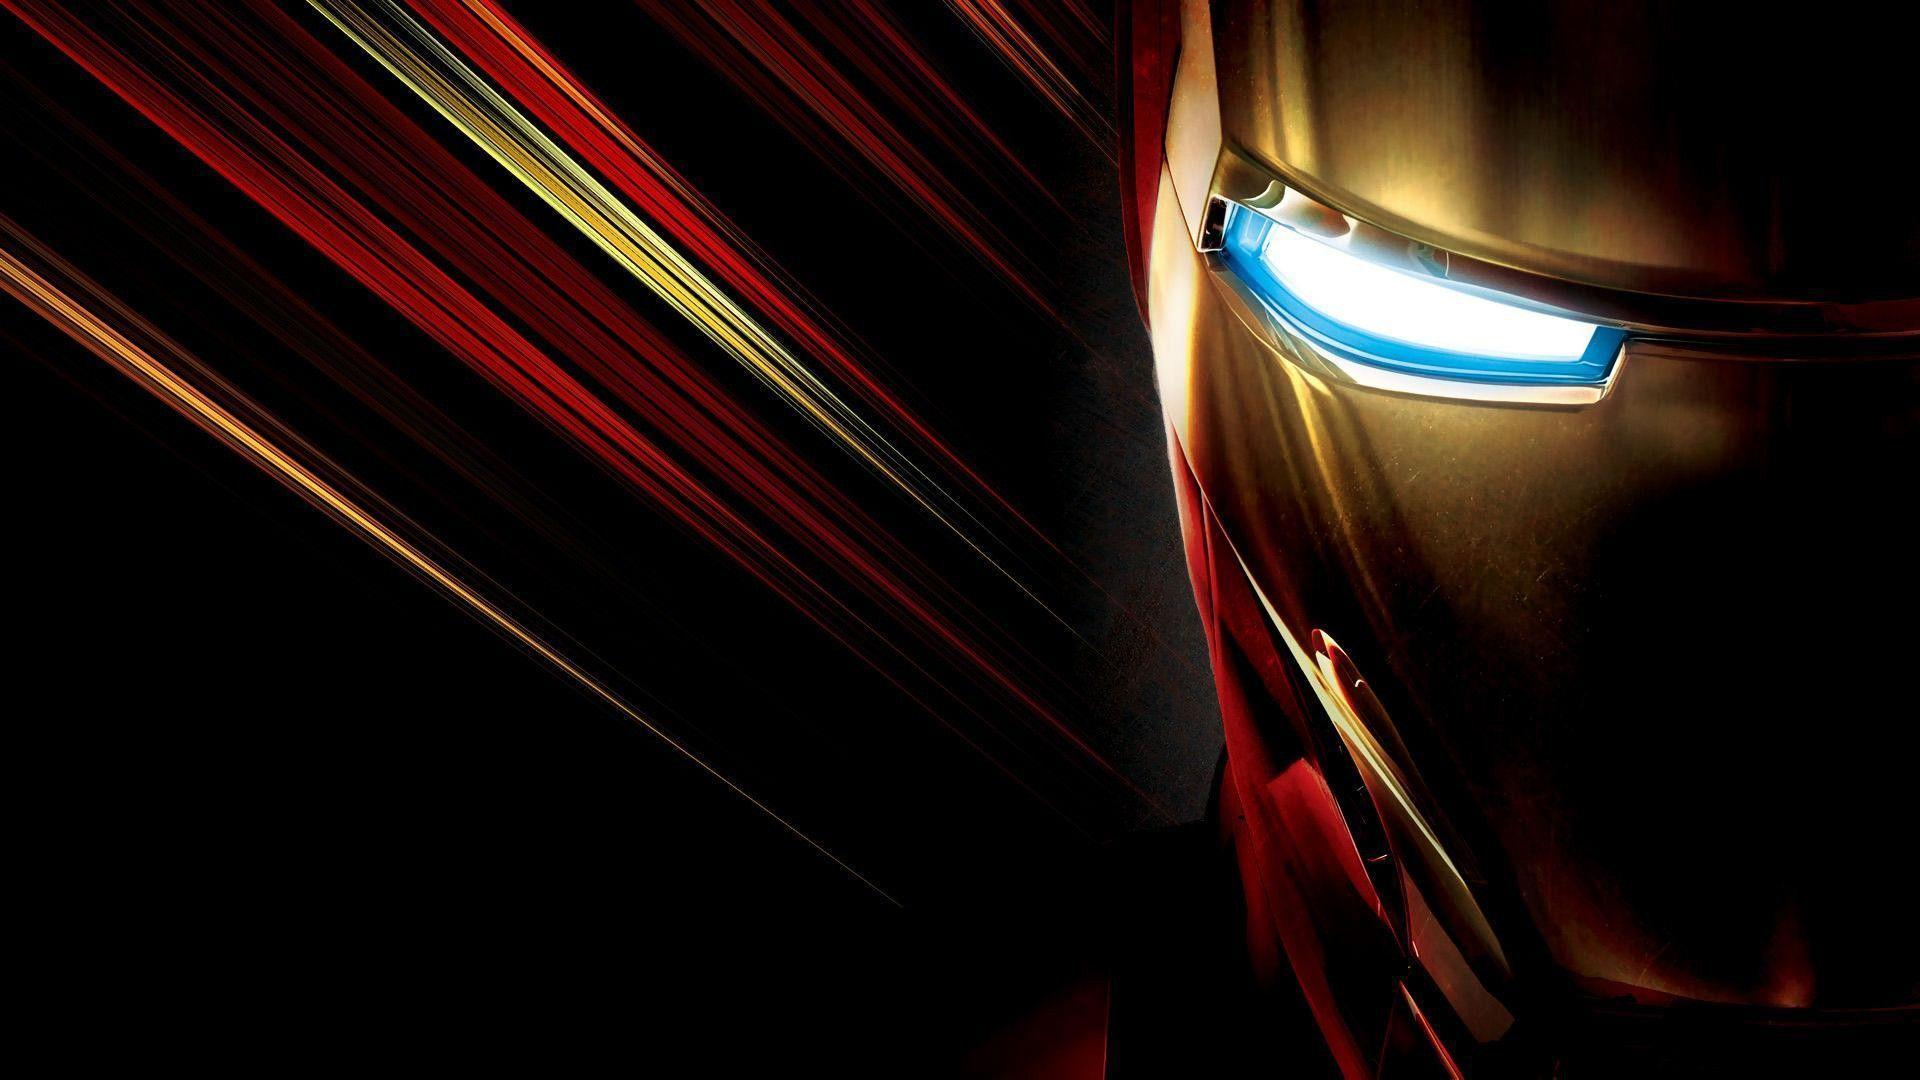 131 Iron Man Wallpapers